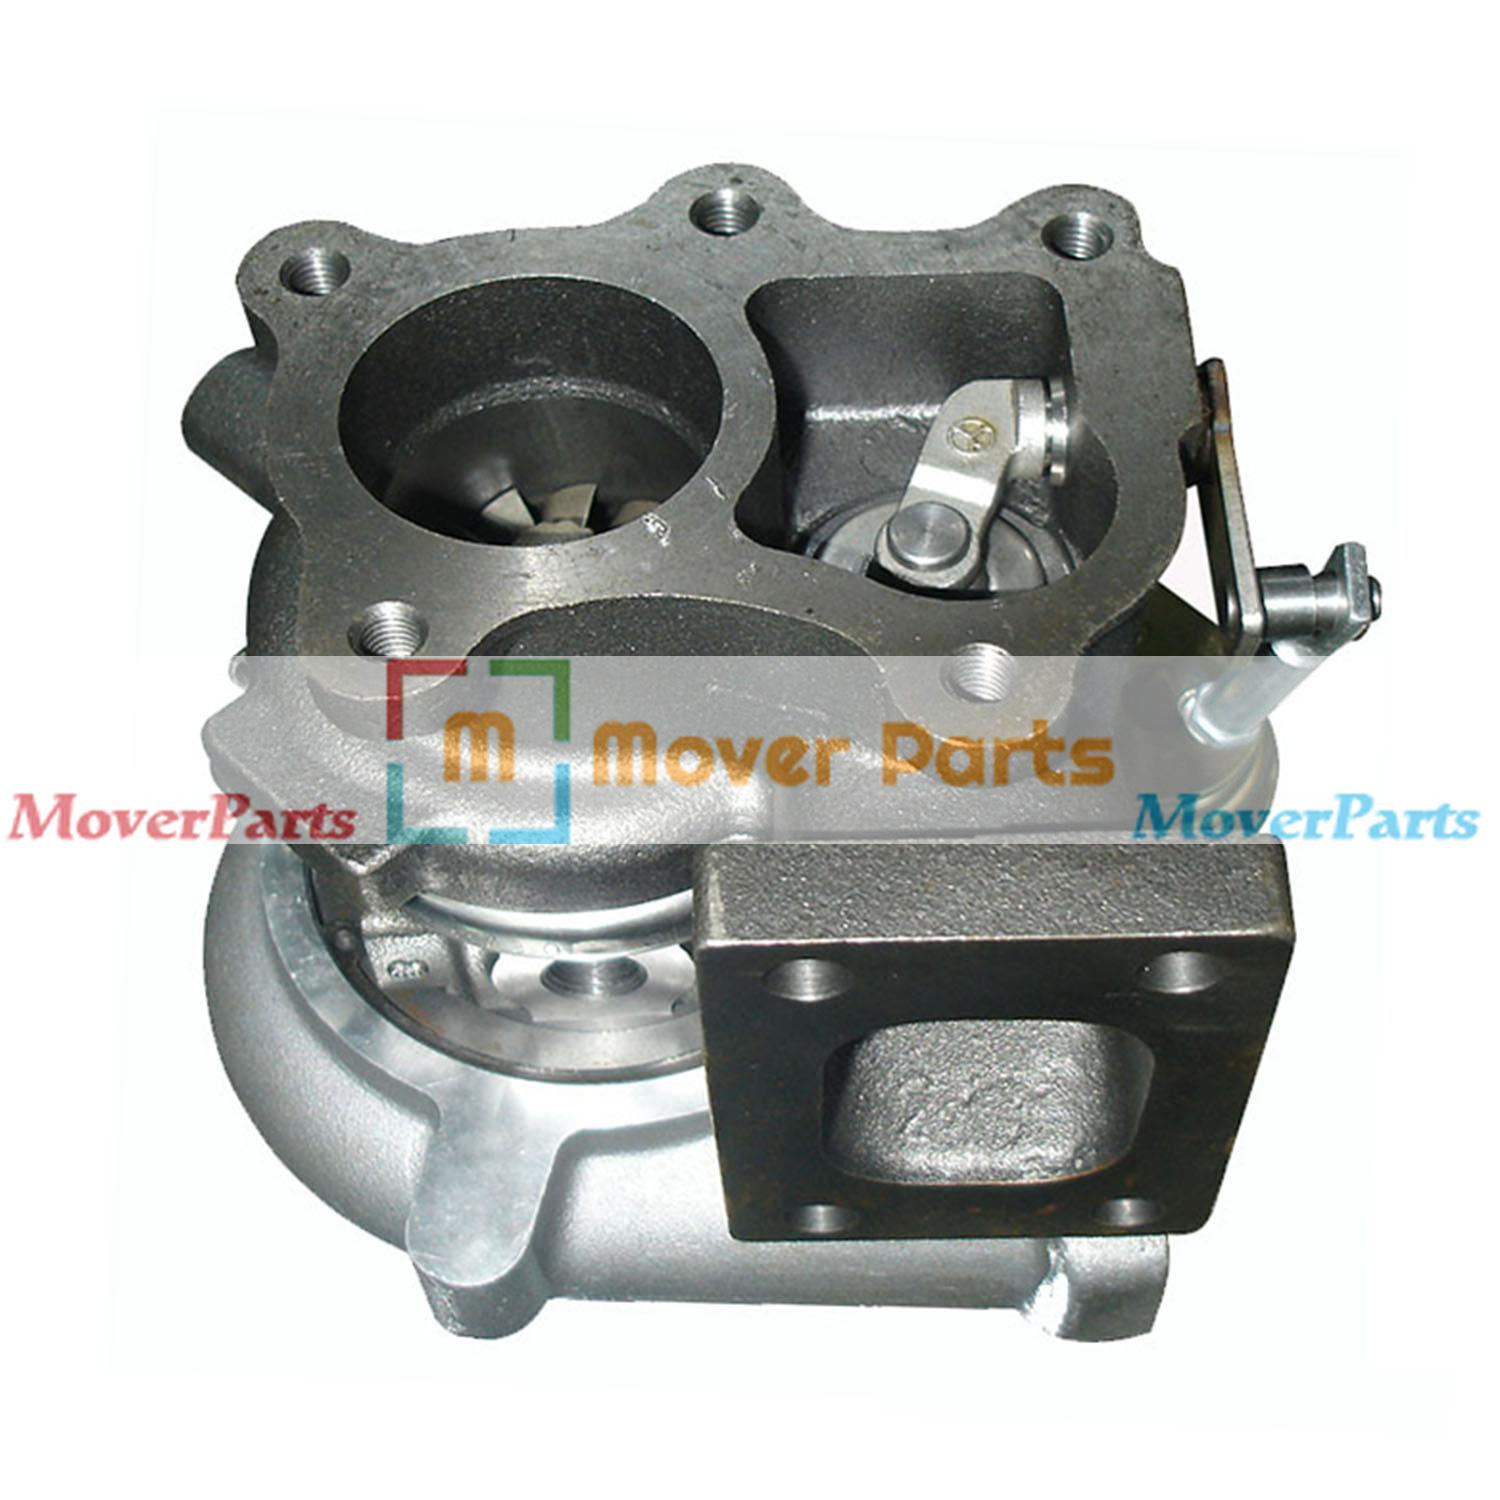 compatible with New QD32 14411-7T605 Turbo 49377-02605 Turbocharger for Nissan D22 Engine QD32TI